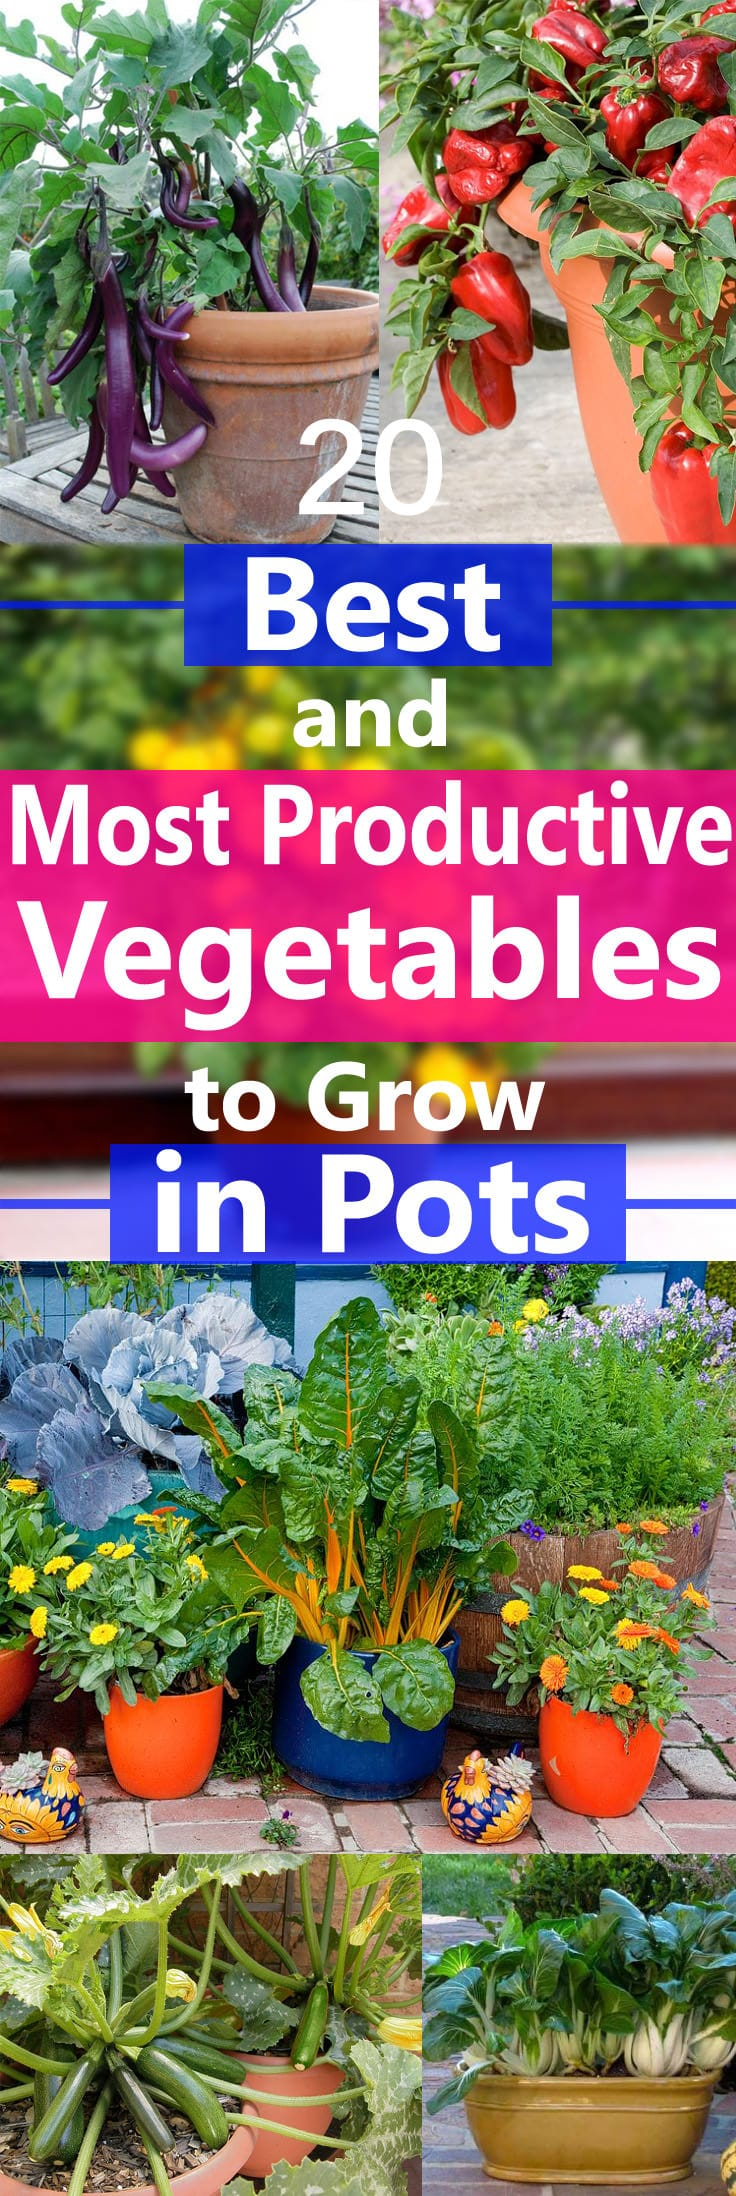 Growing Vegetables In Containers Is Possible But There Are Some That Grow Easily And Produce Heavily